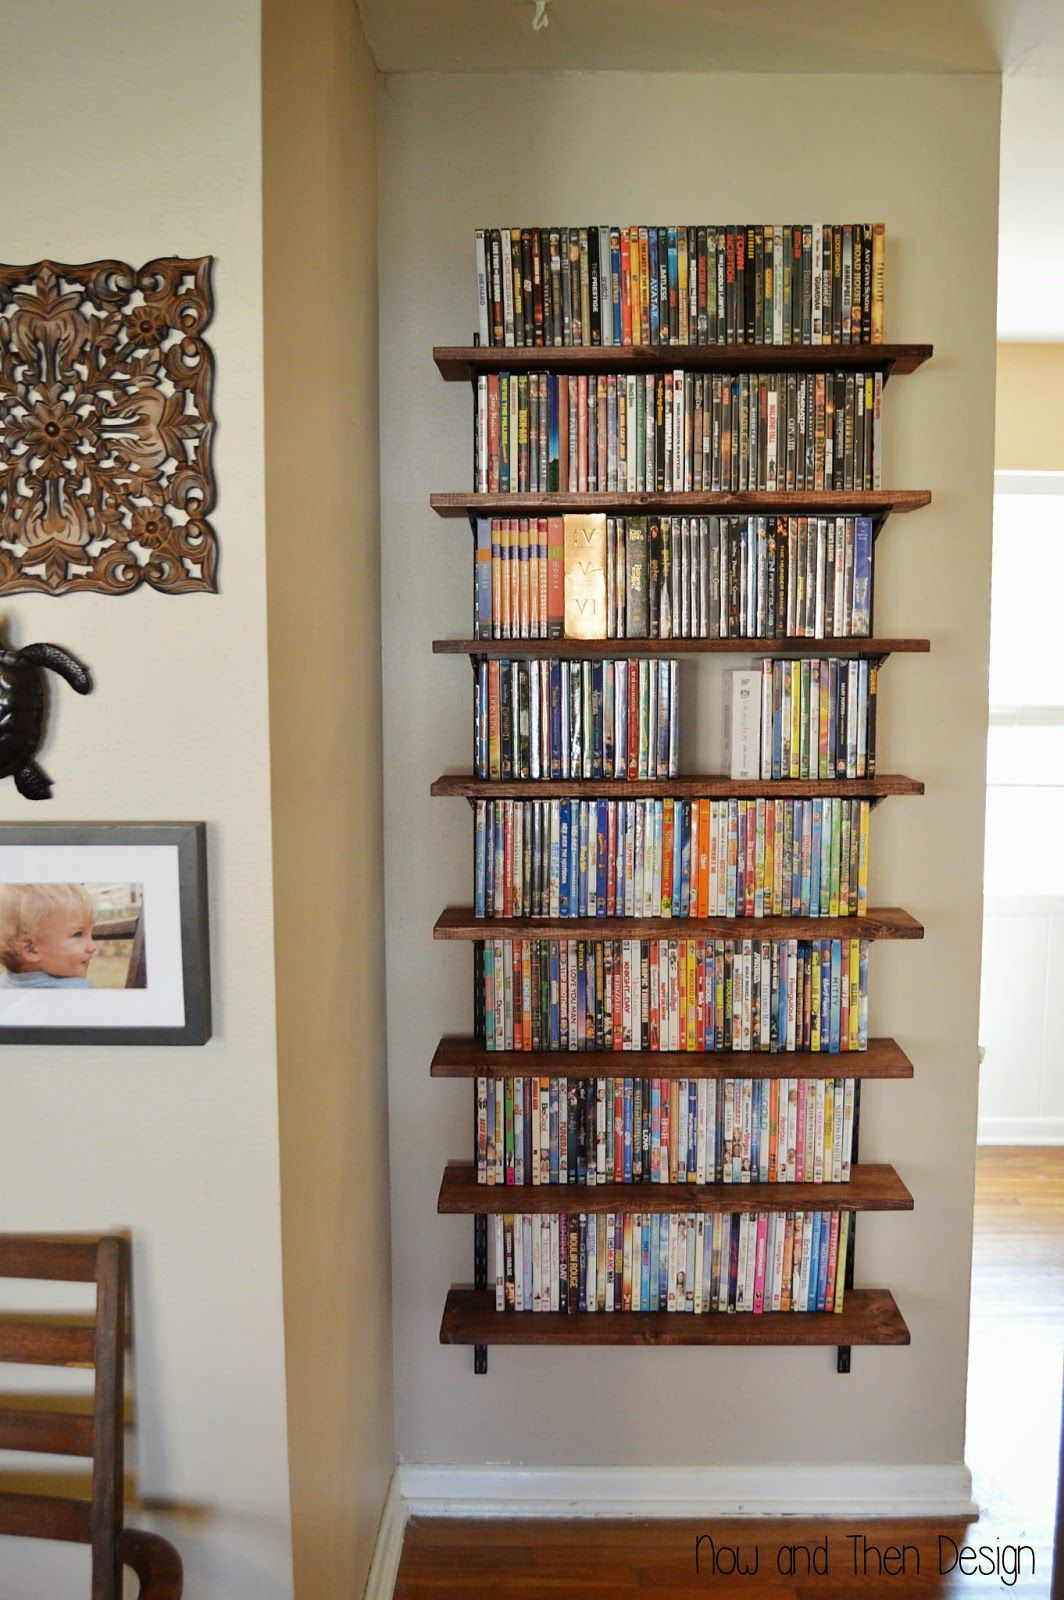 Now And Then Design Dvd Storage Diy Dvd Storage Home Living